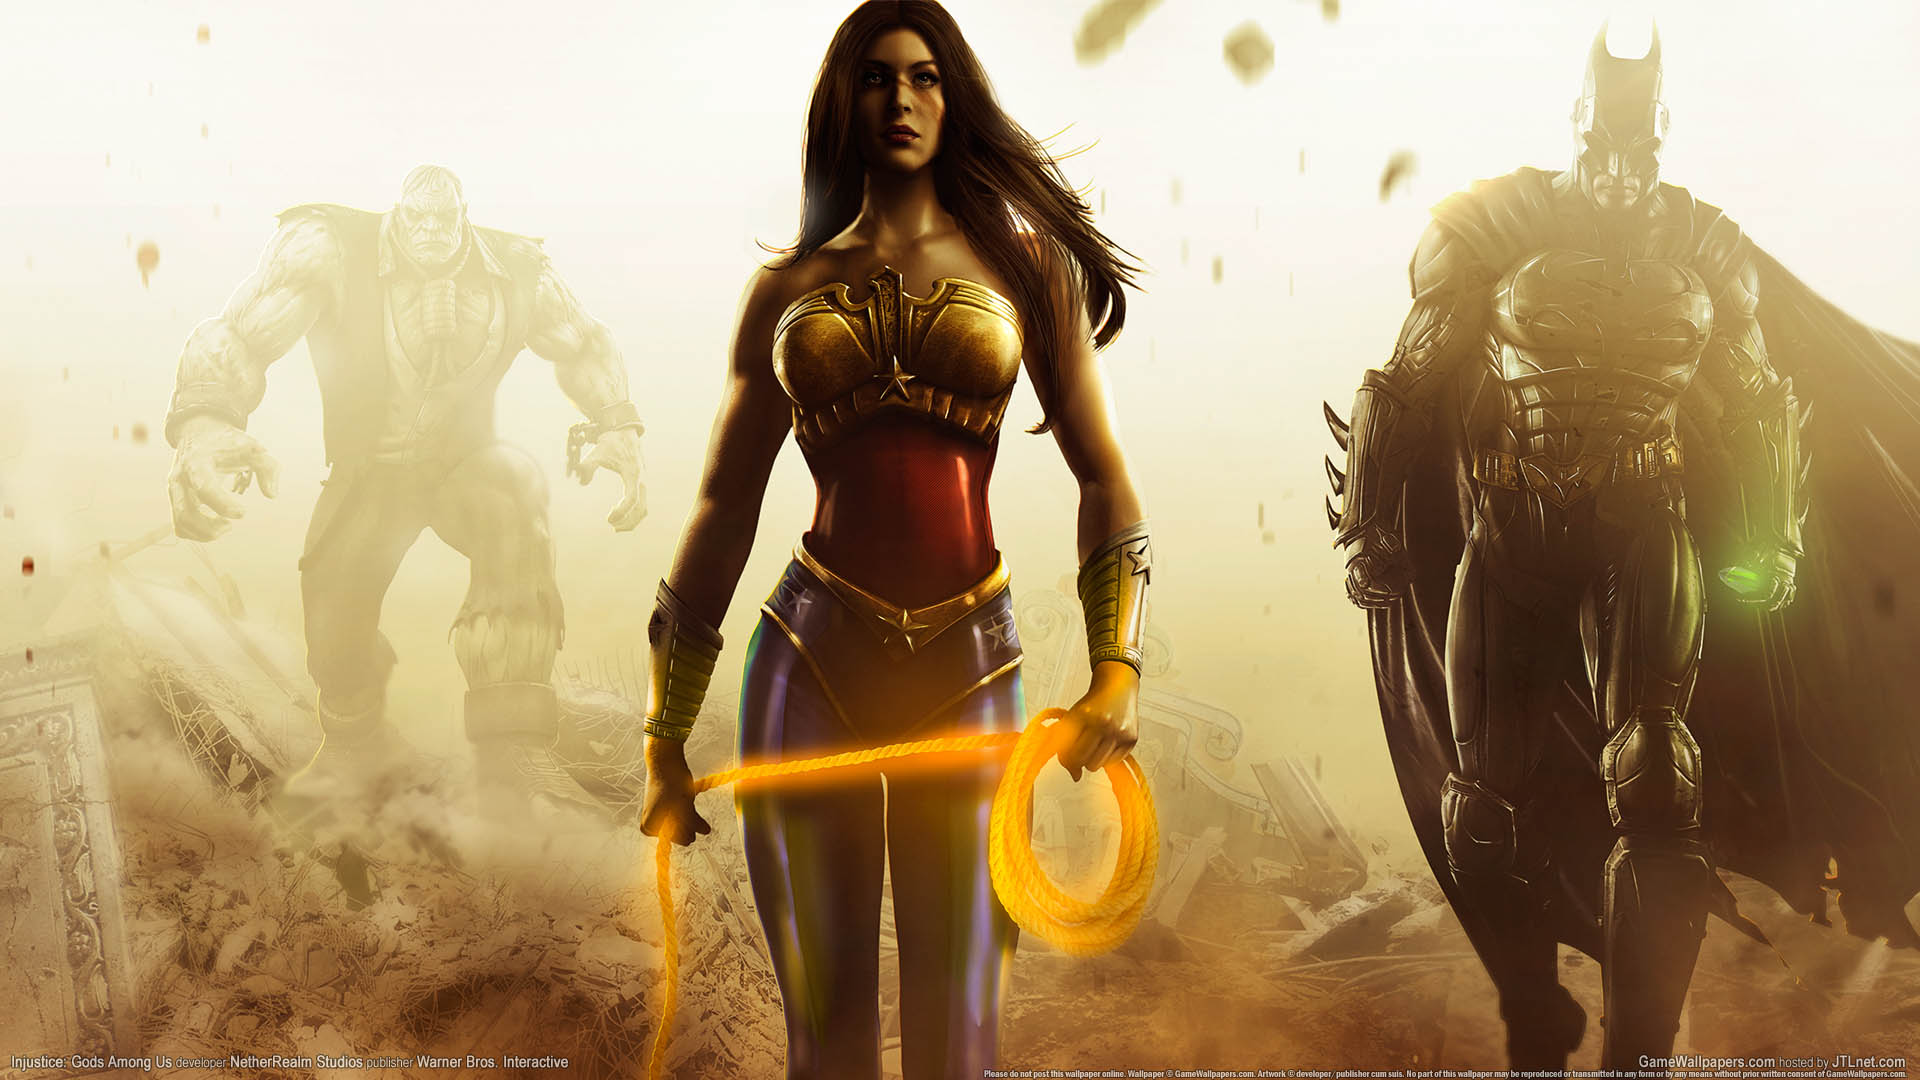 Gods among us wallpaper 05 1920x1080 injustice gods among us wallpaper 05 1920x1080 voltagebd Image collections